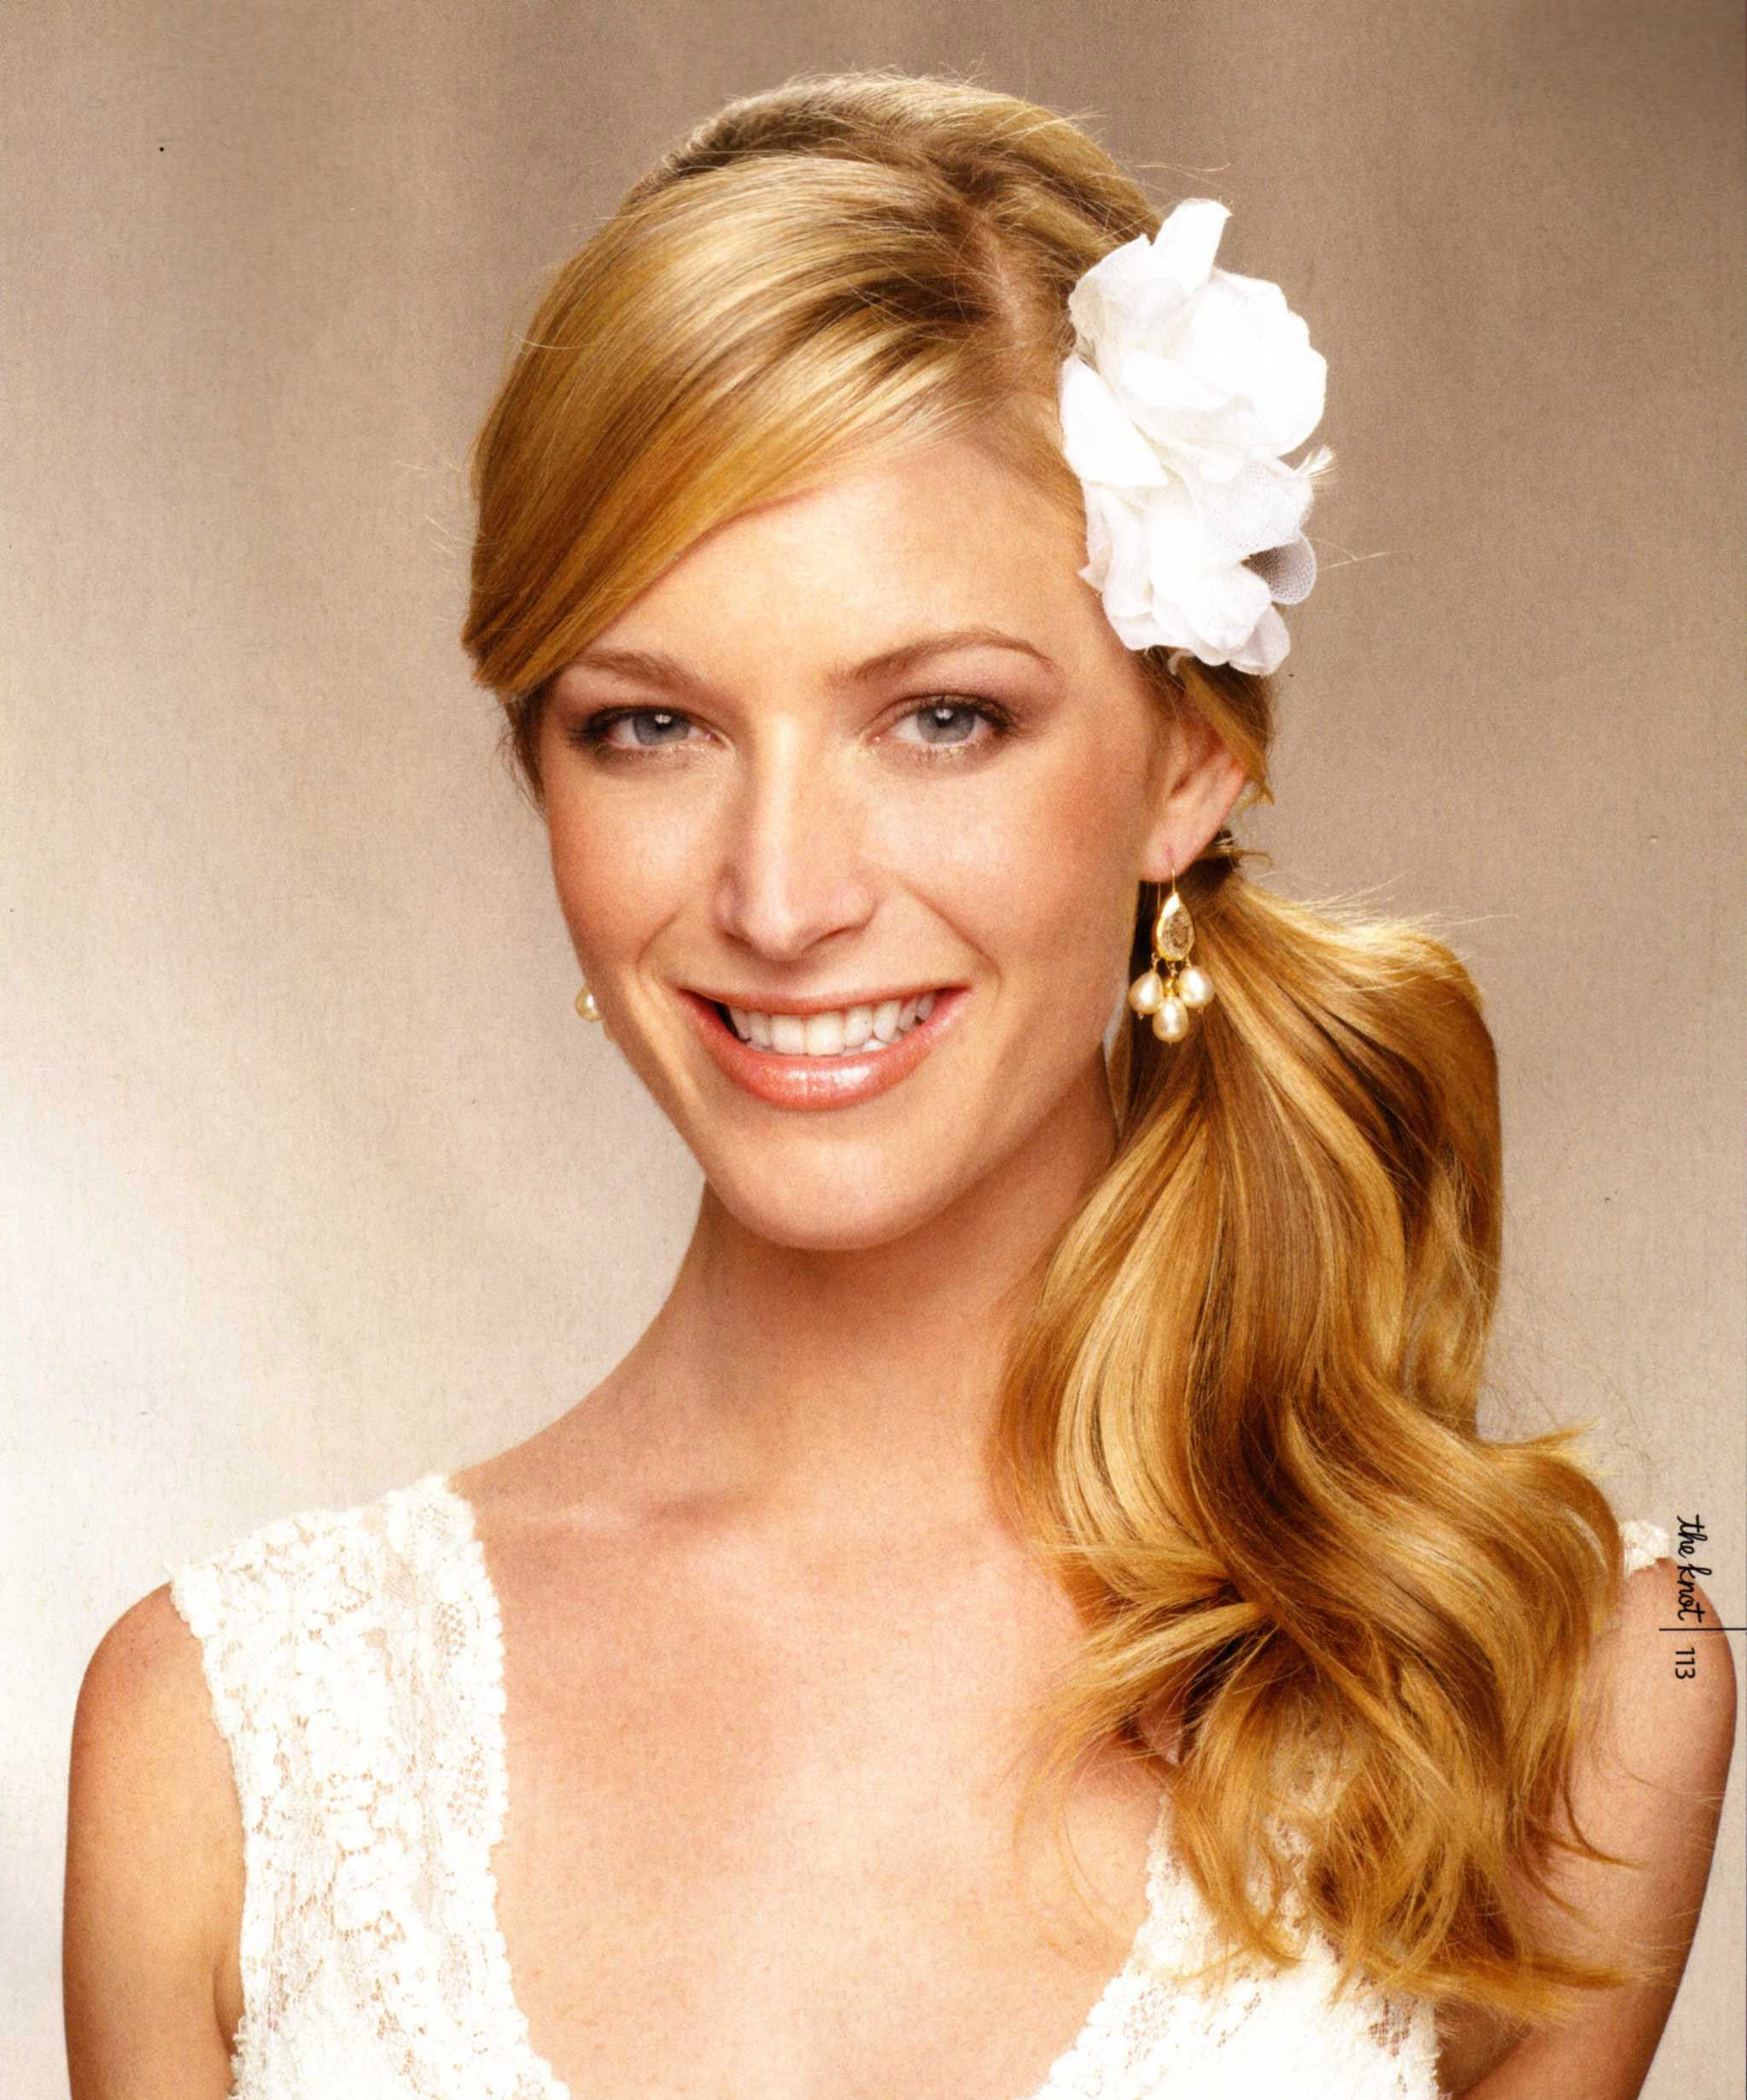 75 Wedding Young bridesmaid hairstyles pictures